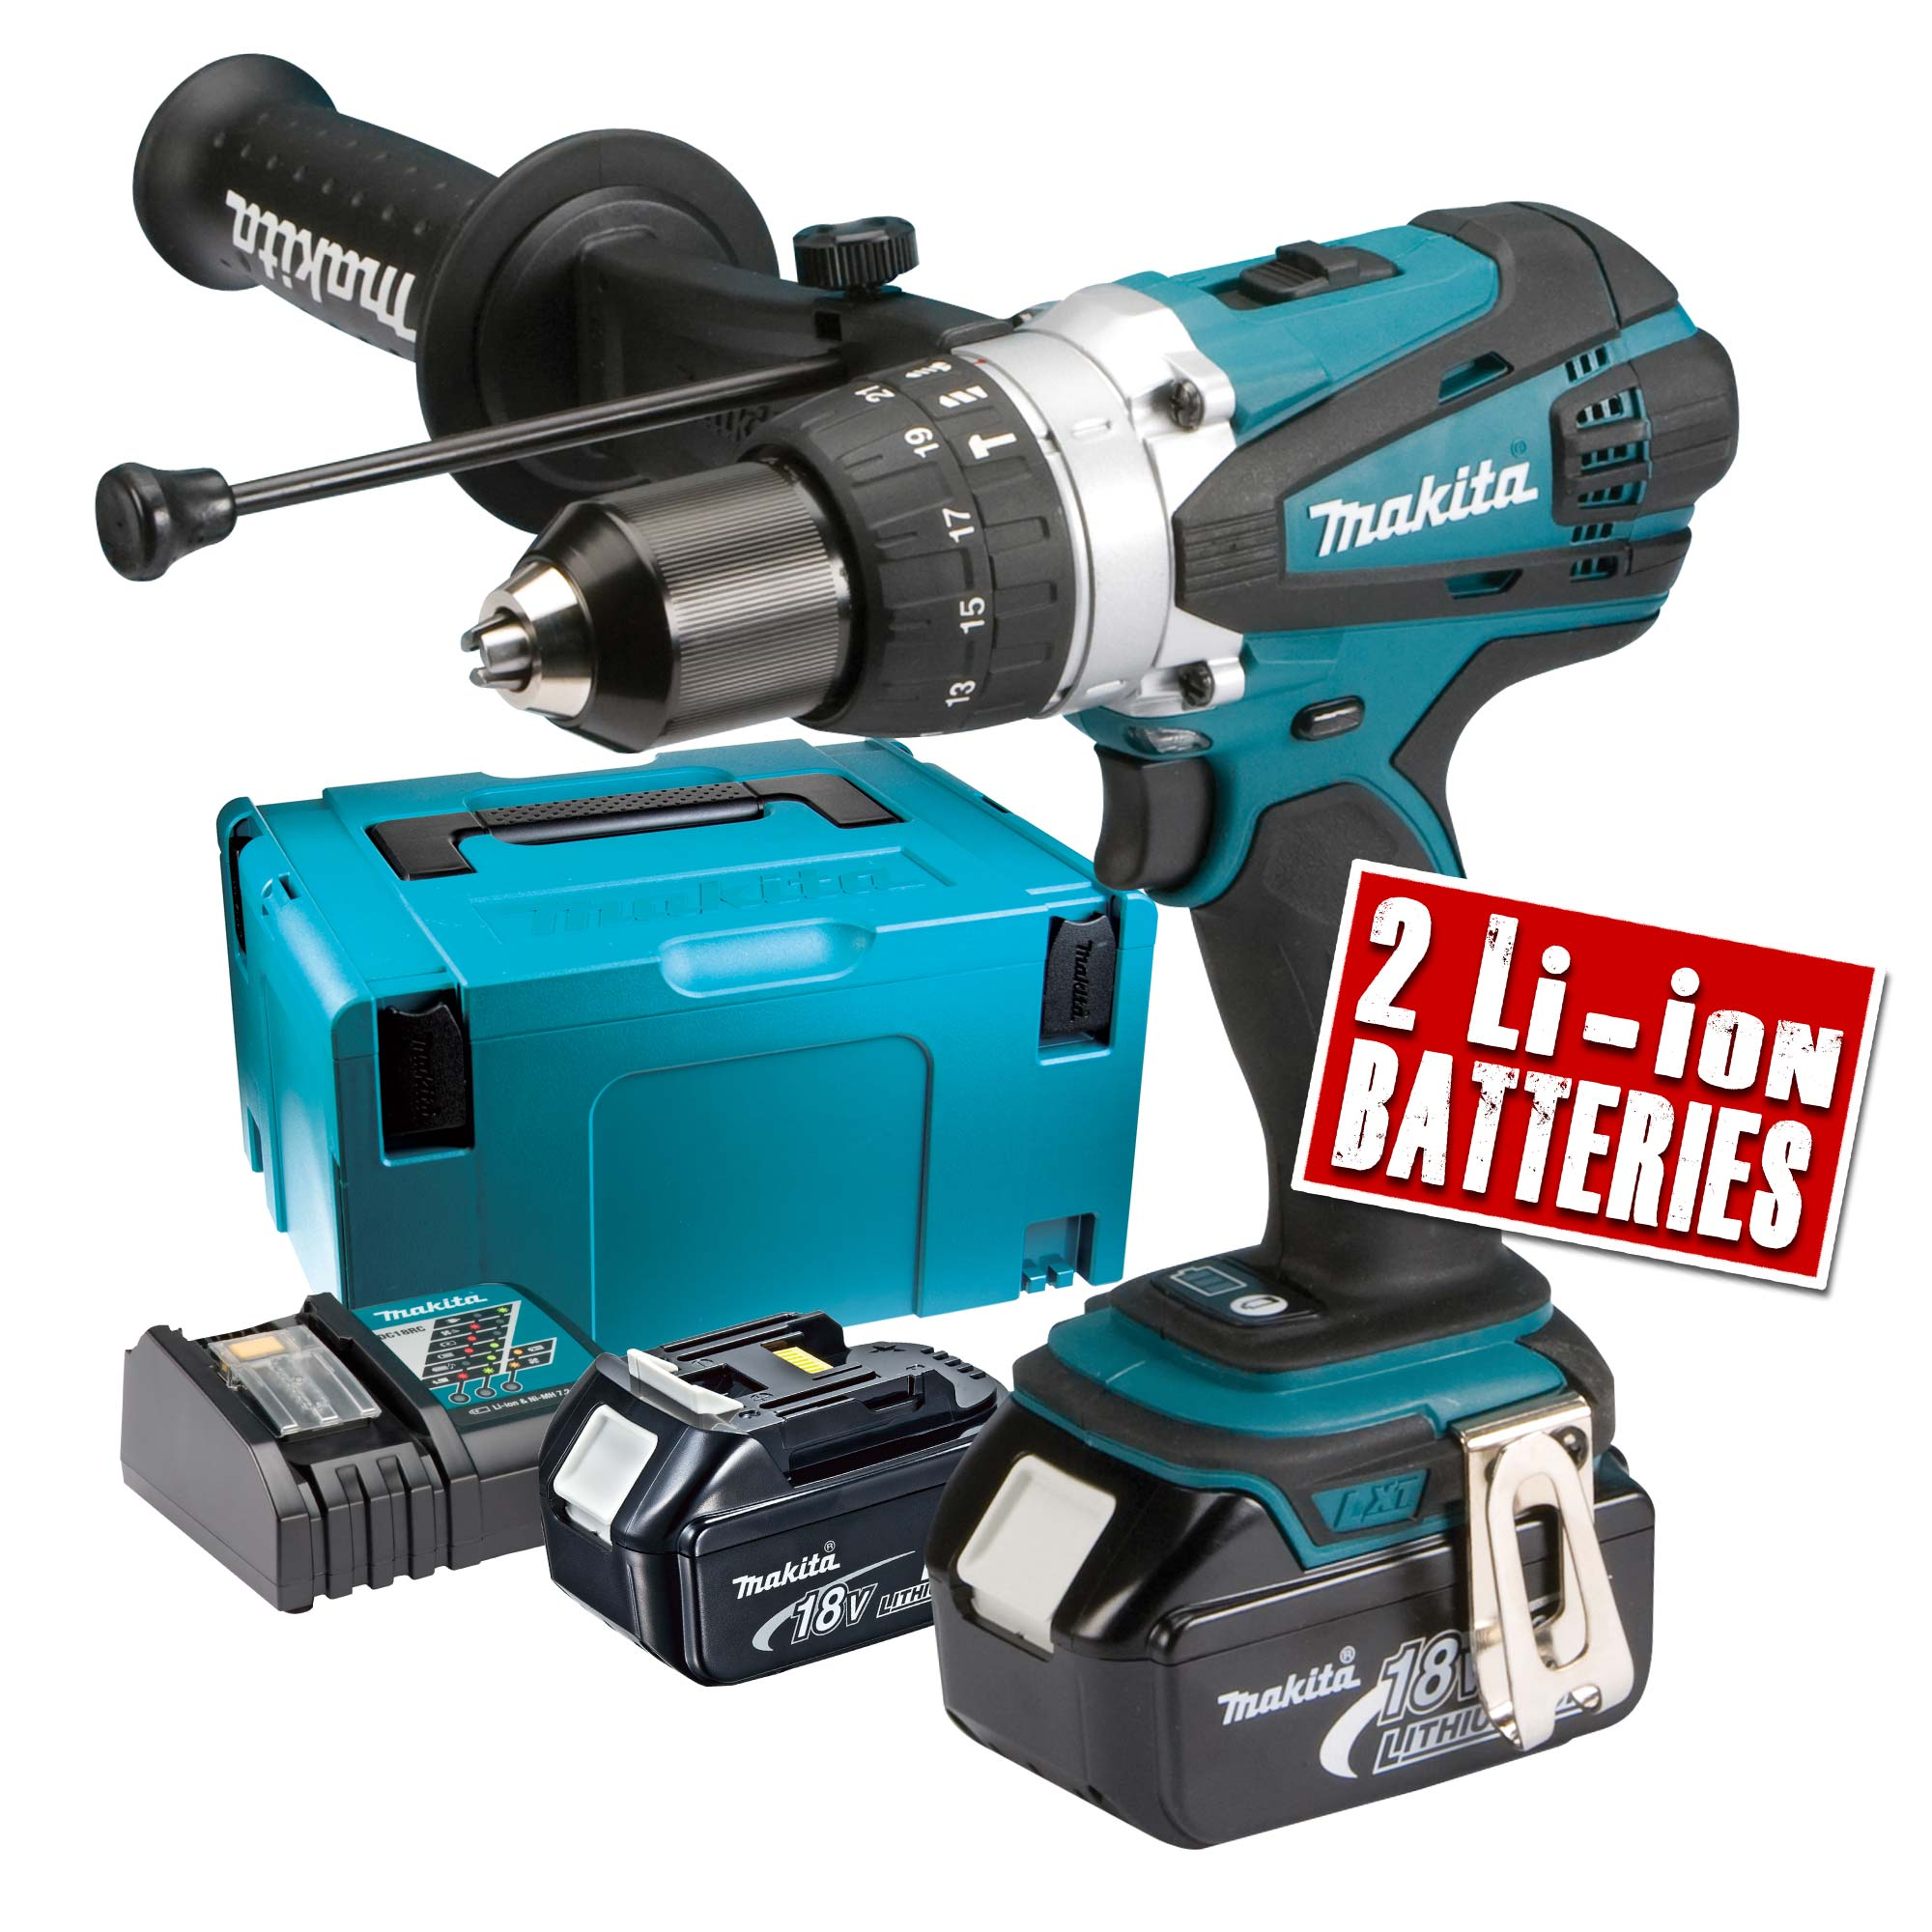 makita dhp458rmj makita 18v li ion hammer drill driver. Black Bedroom Furniture Sets. Home Design Ideas